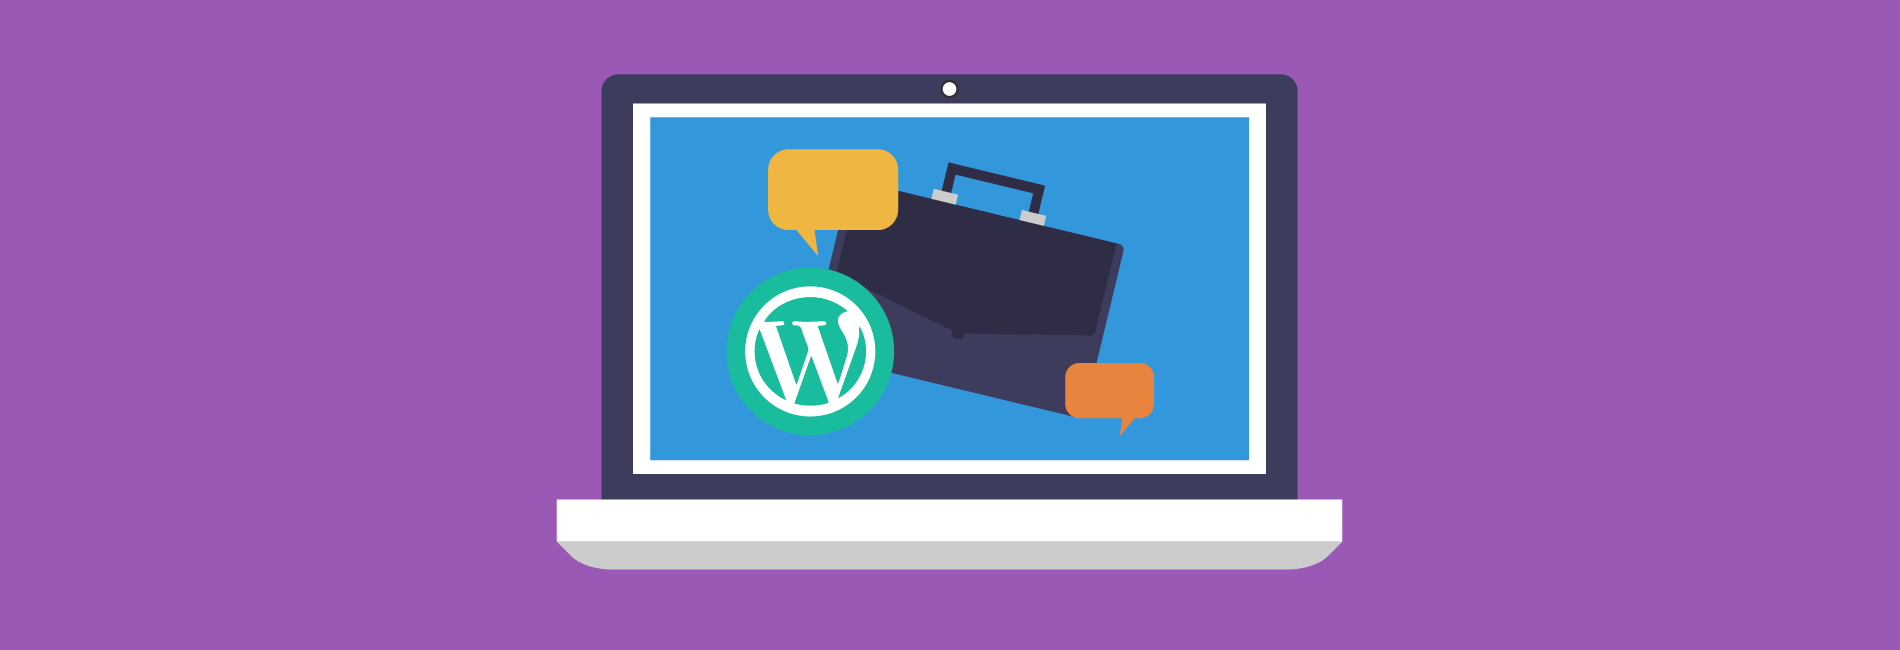 How To Add A Directory To Any WordPress Website.